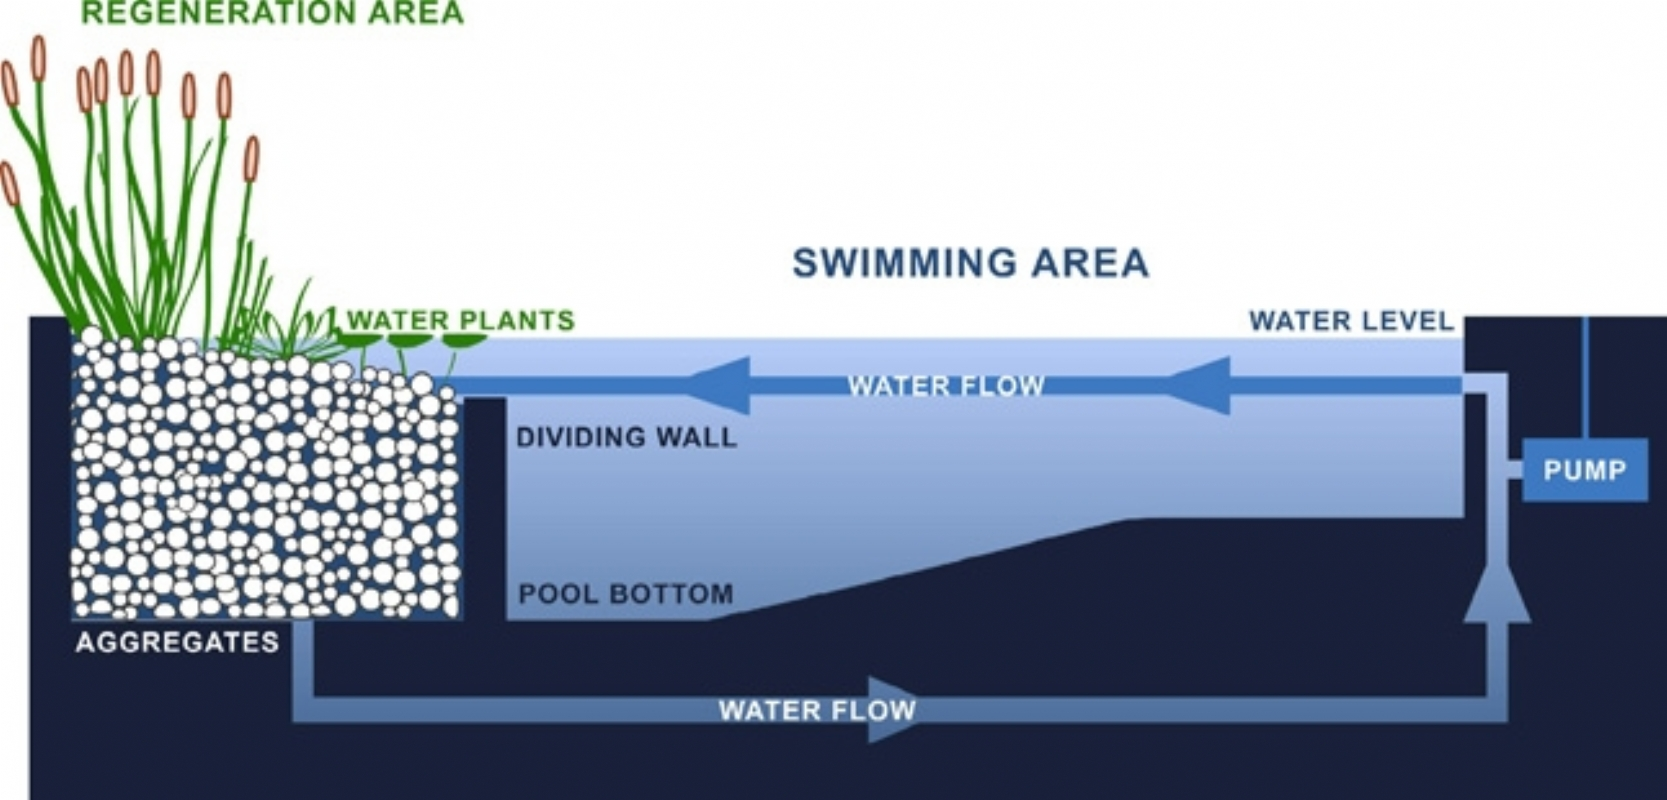 Gartenart How Does The Water Stay Clean Pool Schematic So You Dont Have A Filter Then